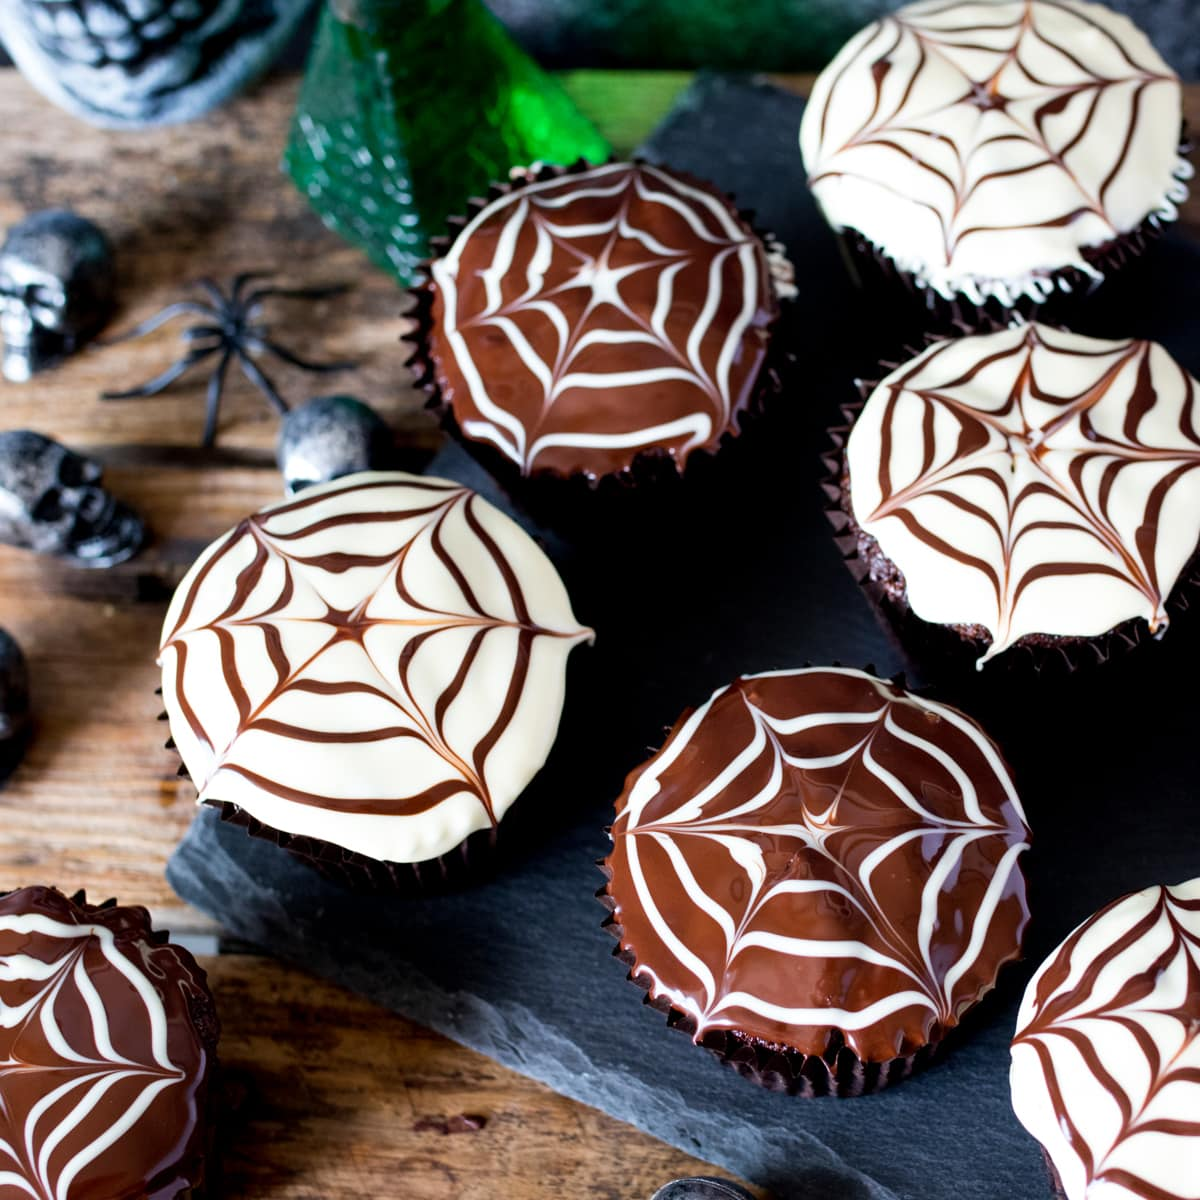 Chocolate Halloween cupcakes with spiderweb patterns in the topping placed on a dark slate background with toy skulls and spiders in the background.